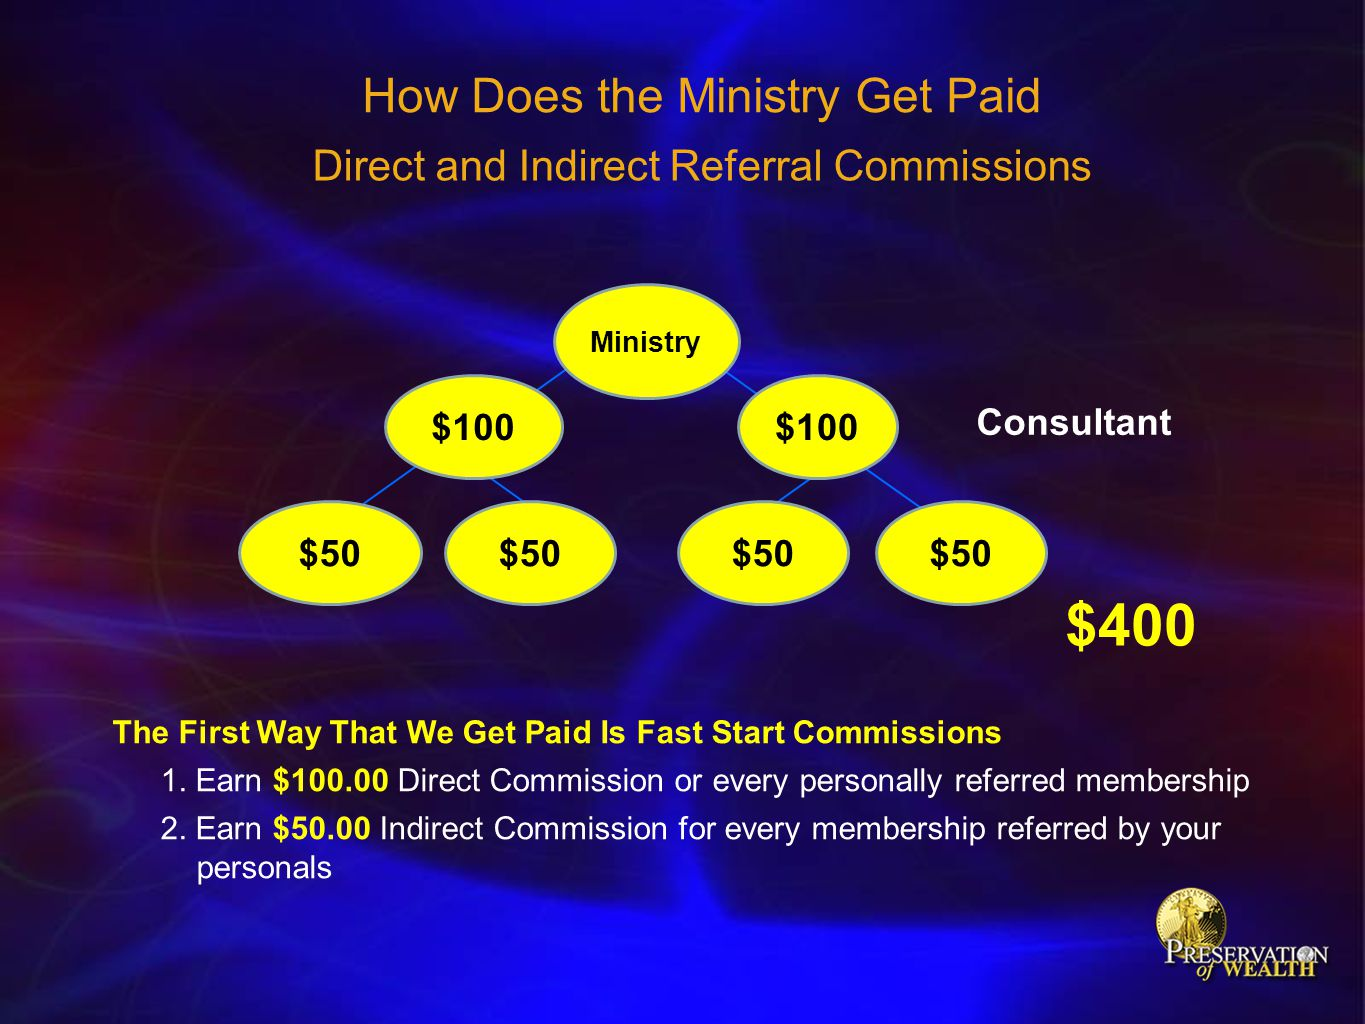 $400 How Does the Ministry Get Paid